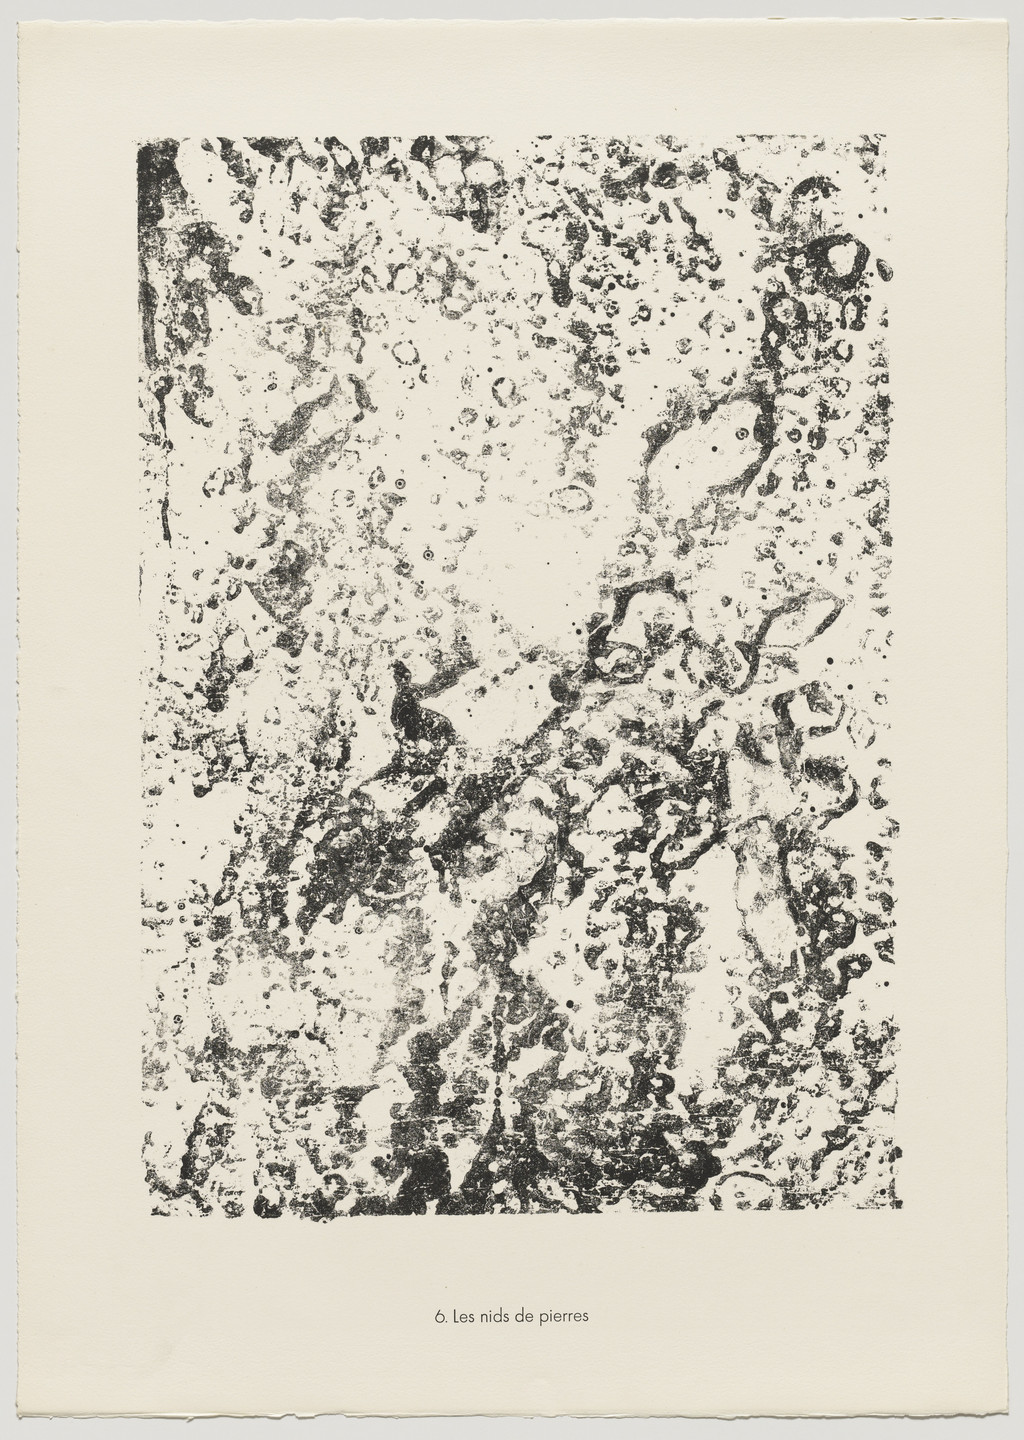 Jean Dubuffet. Nests of Stone (Les nids de pierres) from the portfolio Theater of the Earth (Théâtre du sol) from Phenomena (Les Phénomènes). 1959